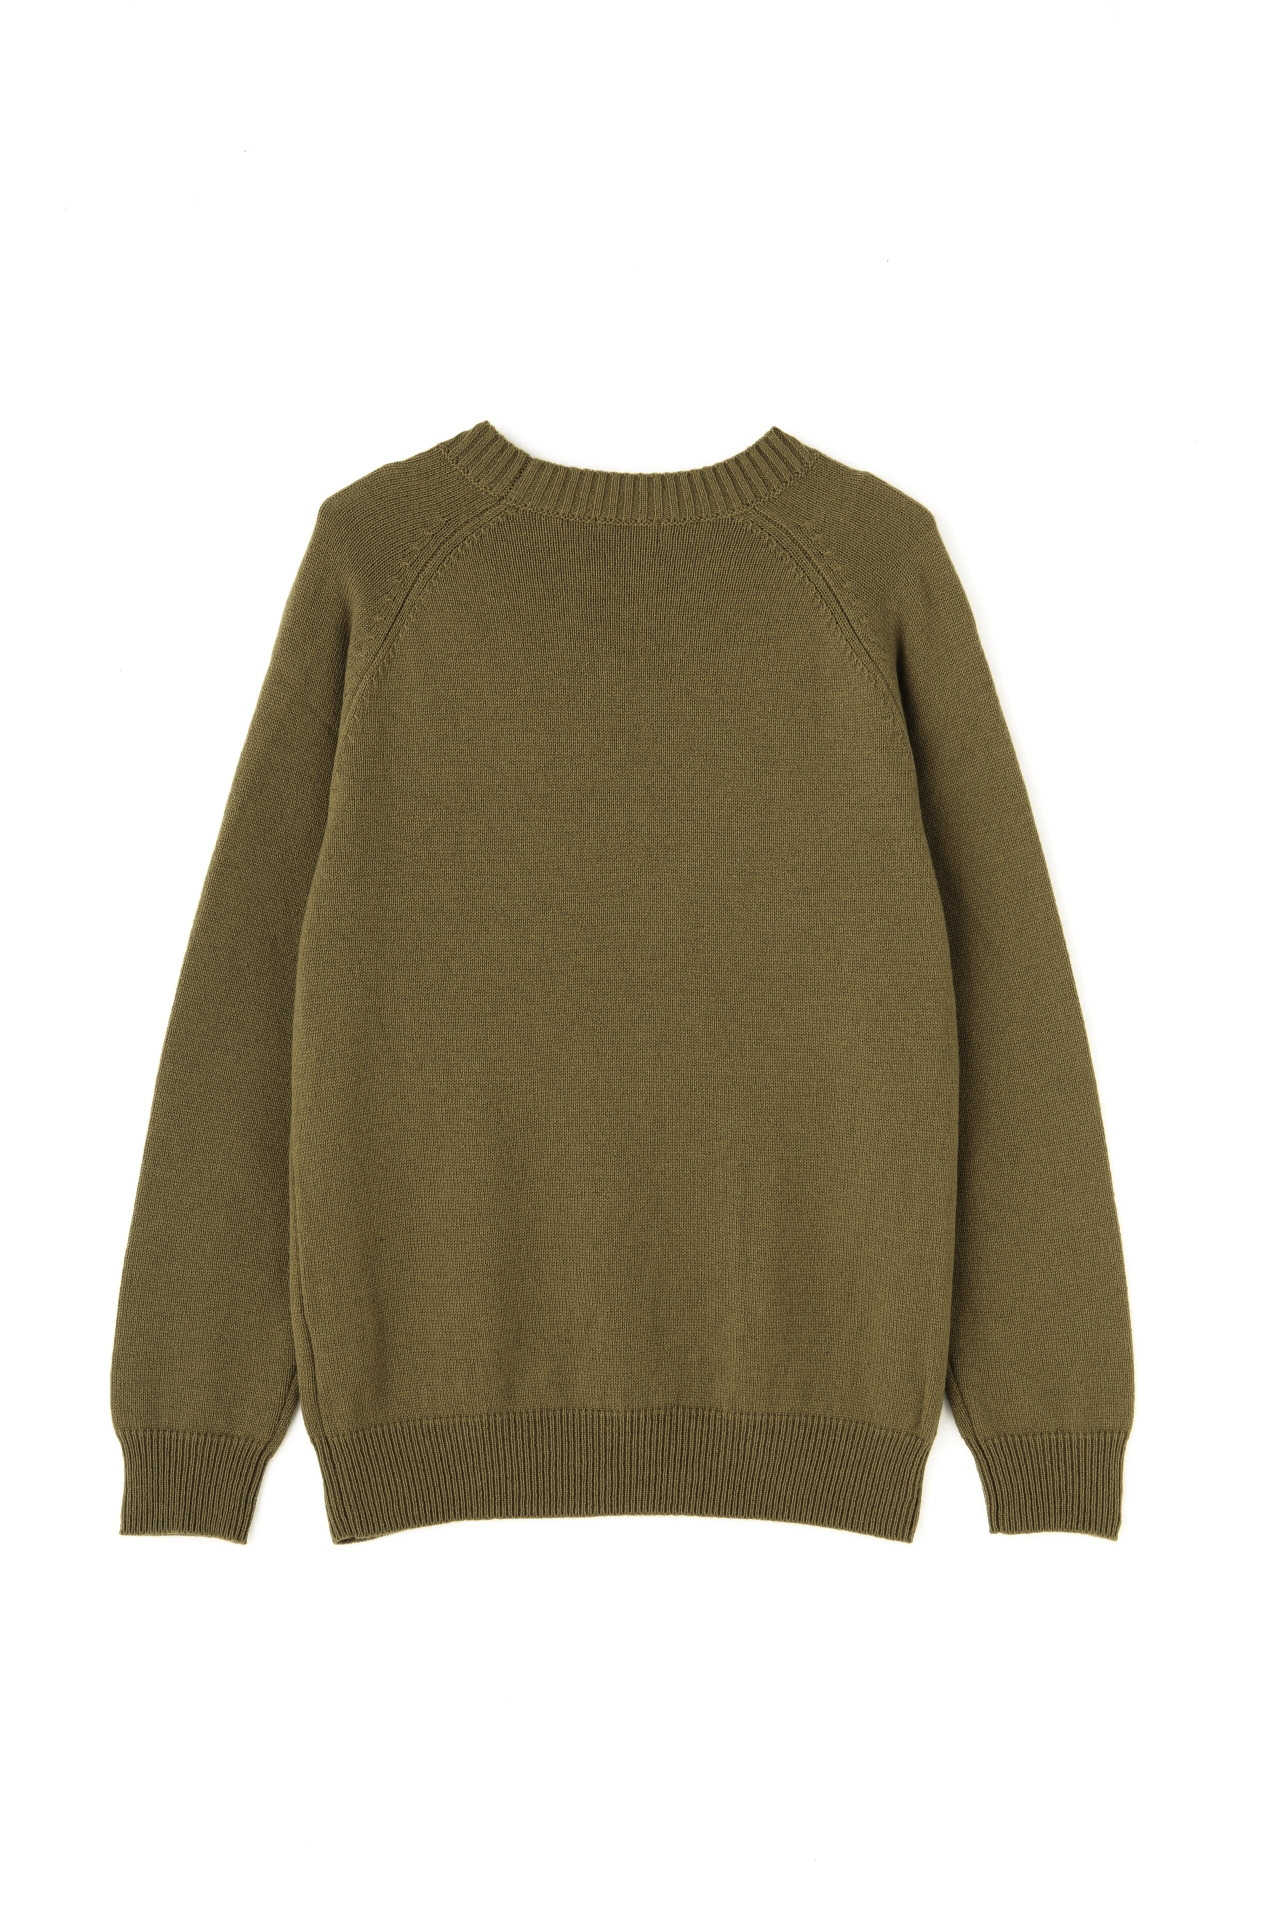 PLAIN WOOL COTTON11